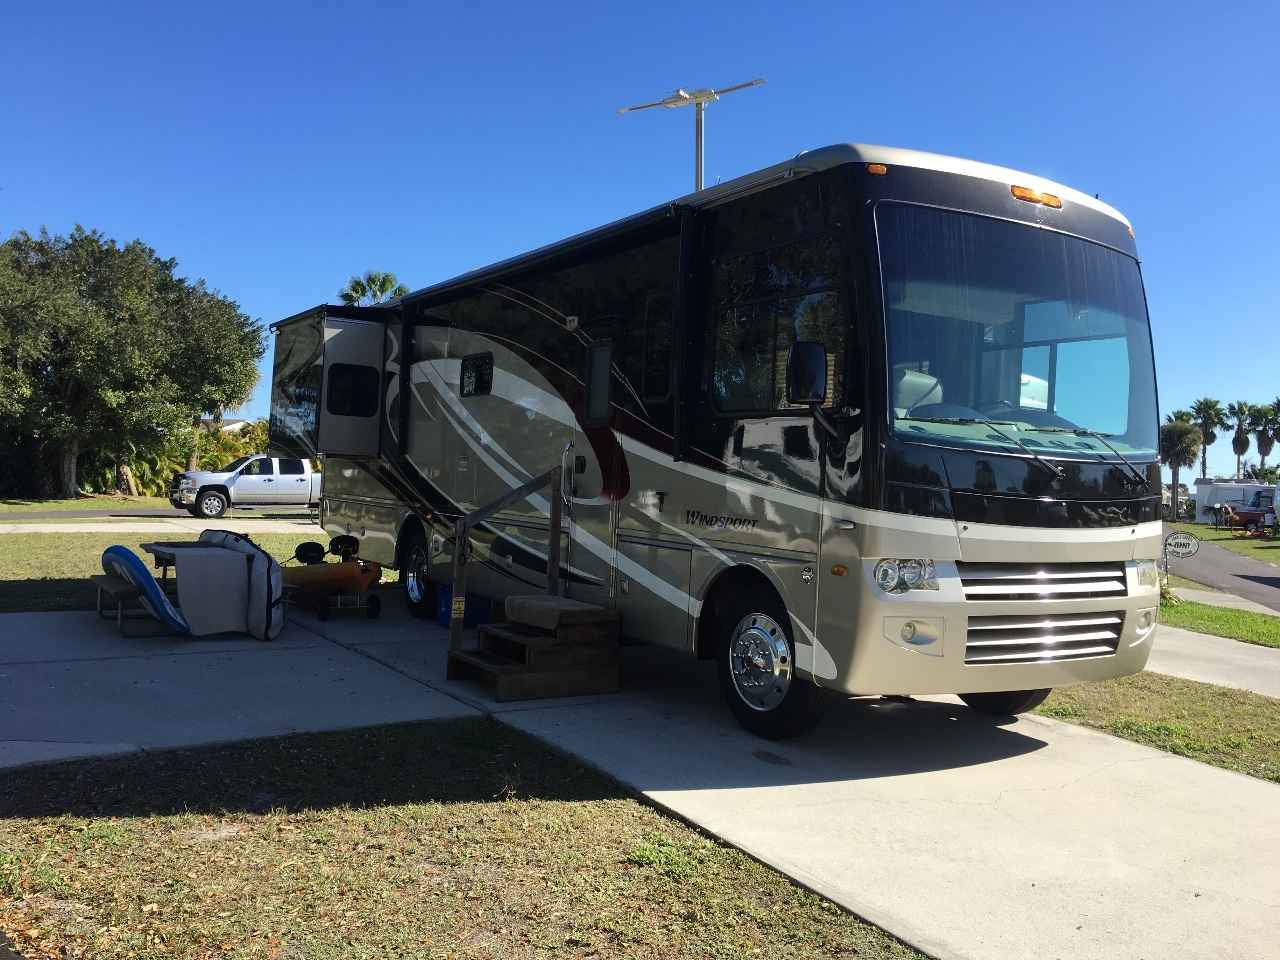 2010 Used Thor Motor Coach Windsport 34u Class A In Florida Fl